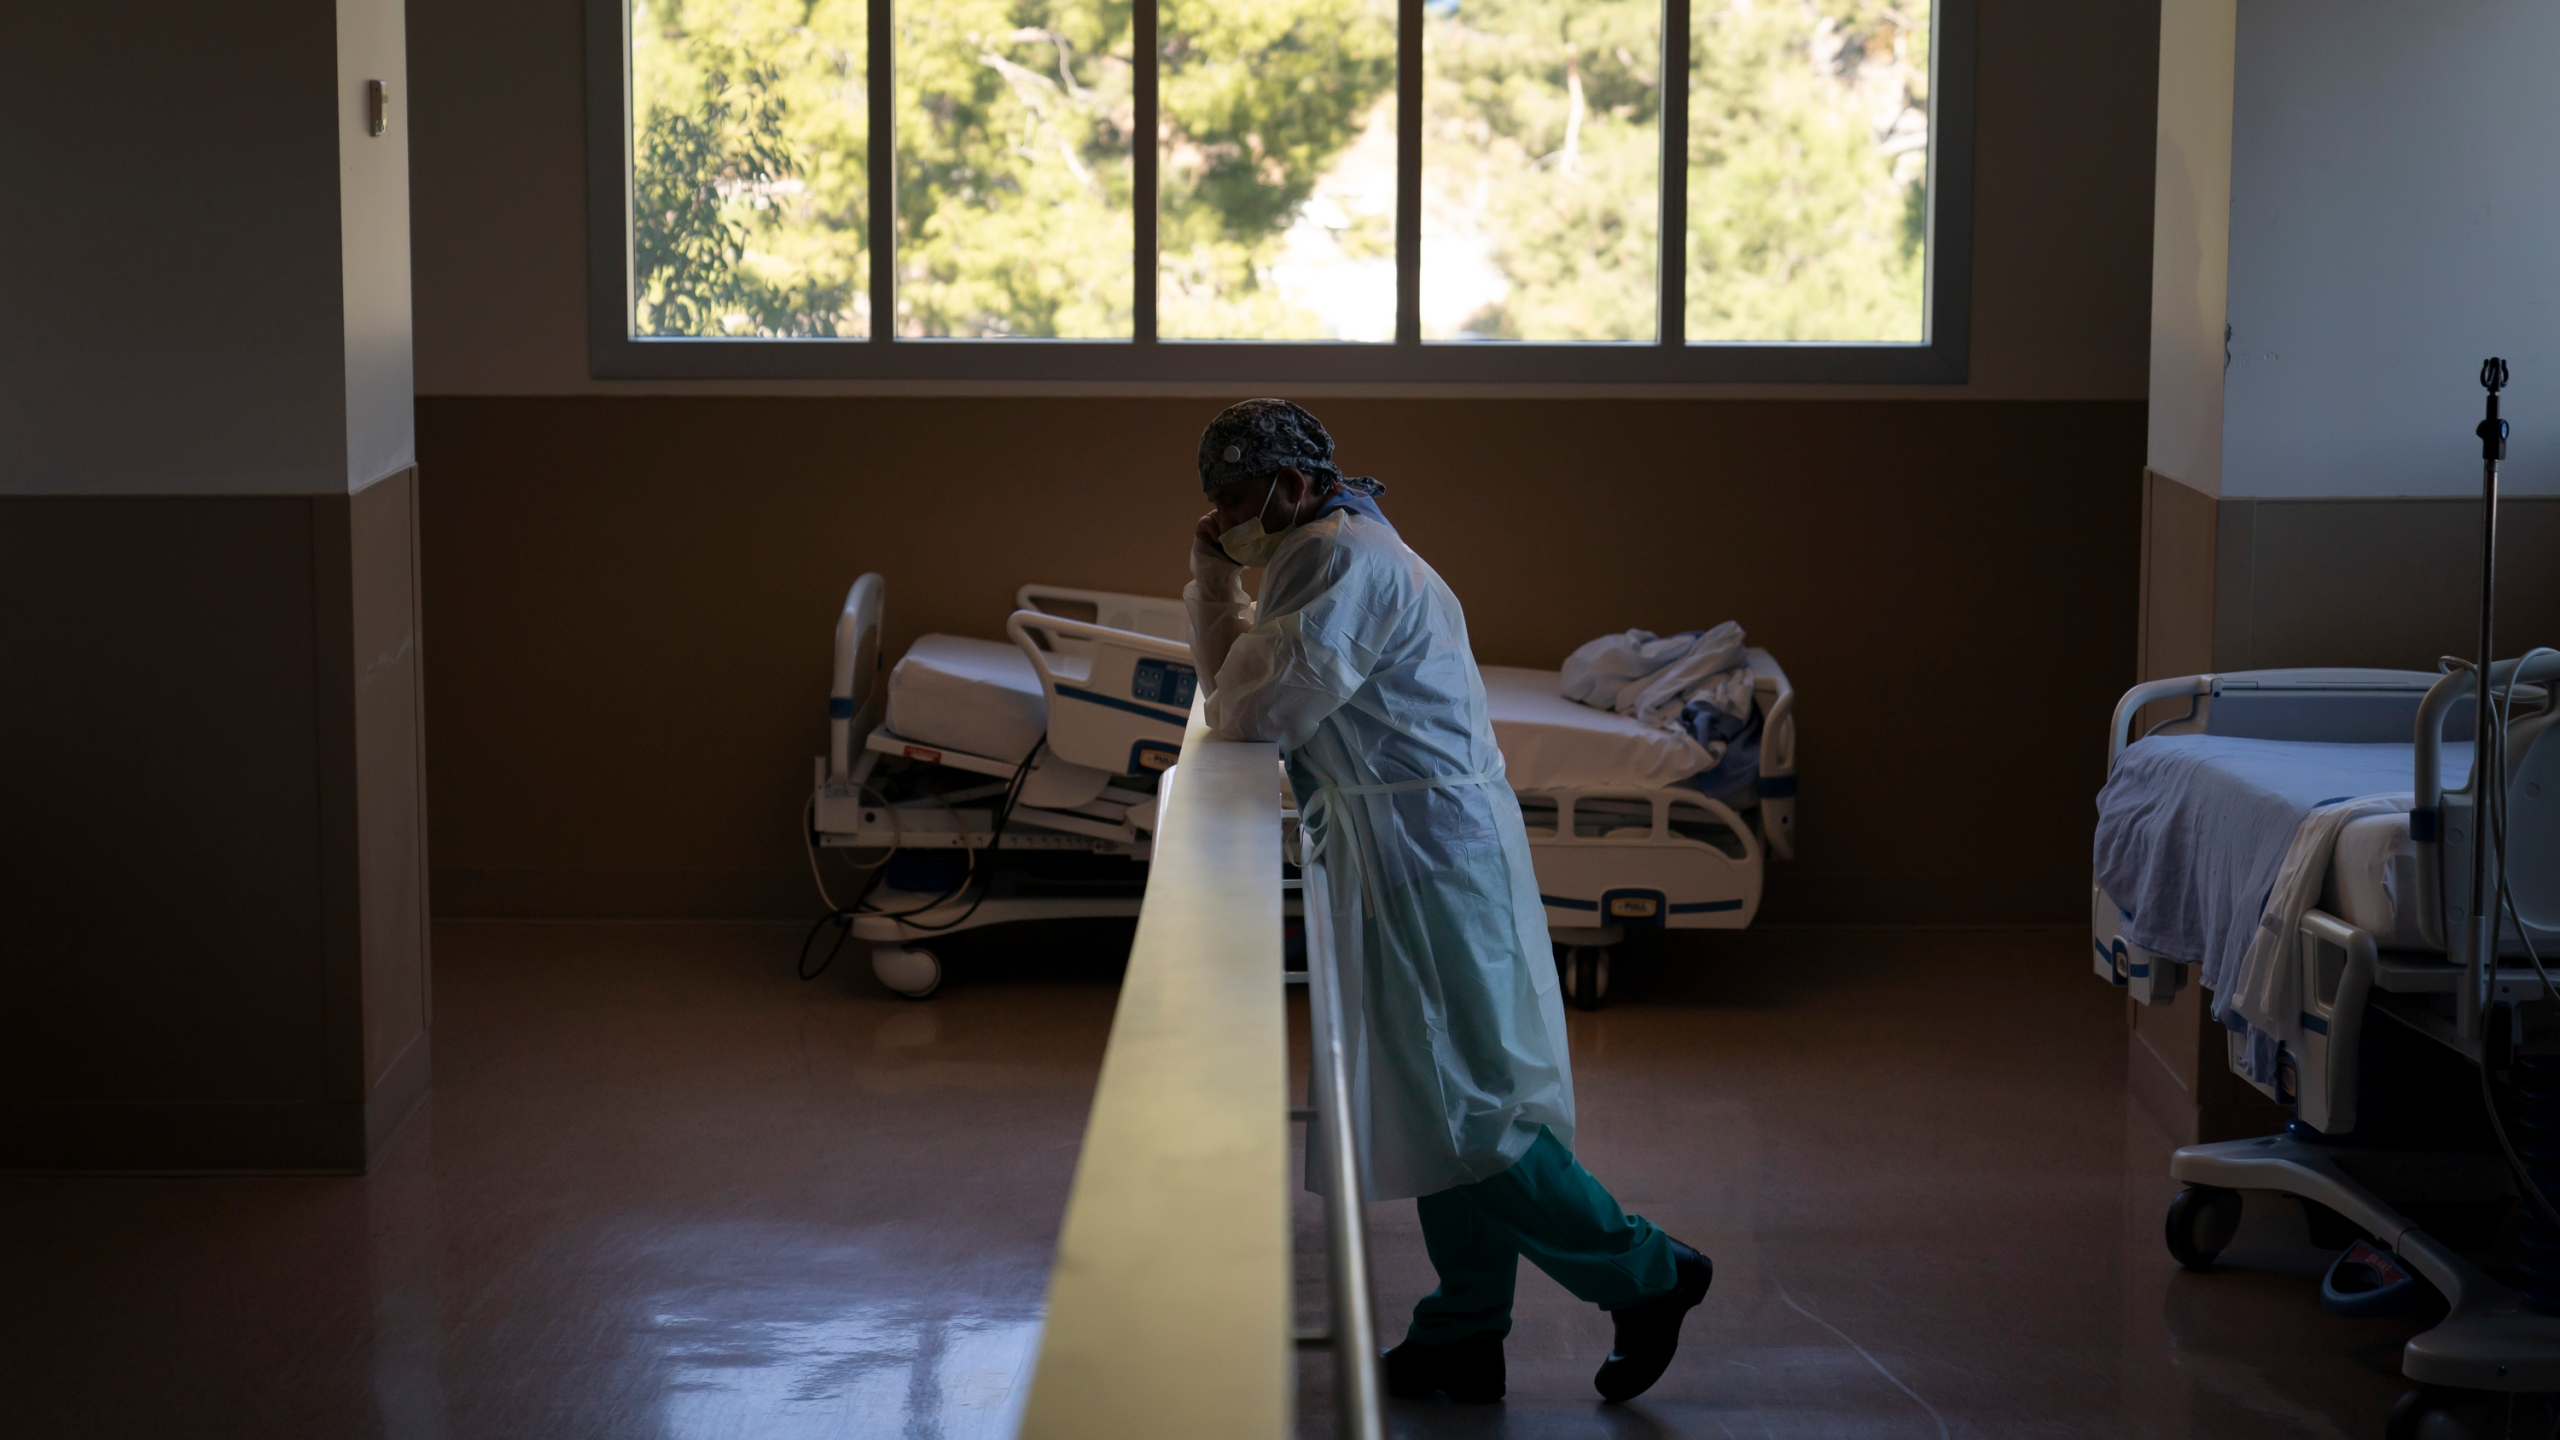 In this Nov. 19, 2020, file photo, respiratory therapist Babu Paramban talks on the phone next to hospital beds while taking a break in the COVID-19 unit at Providence Holy Cross Medical Center in the Mission Hills section of Los Angeles. (Jae C. Hong/AP Photo)